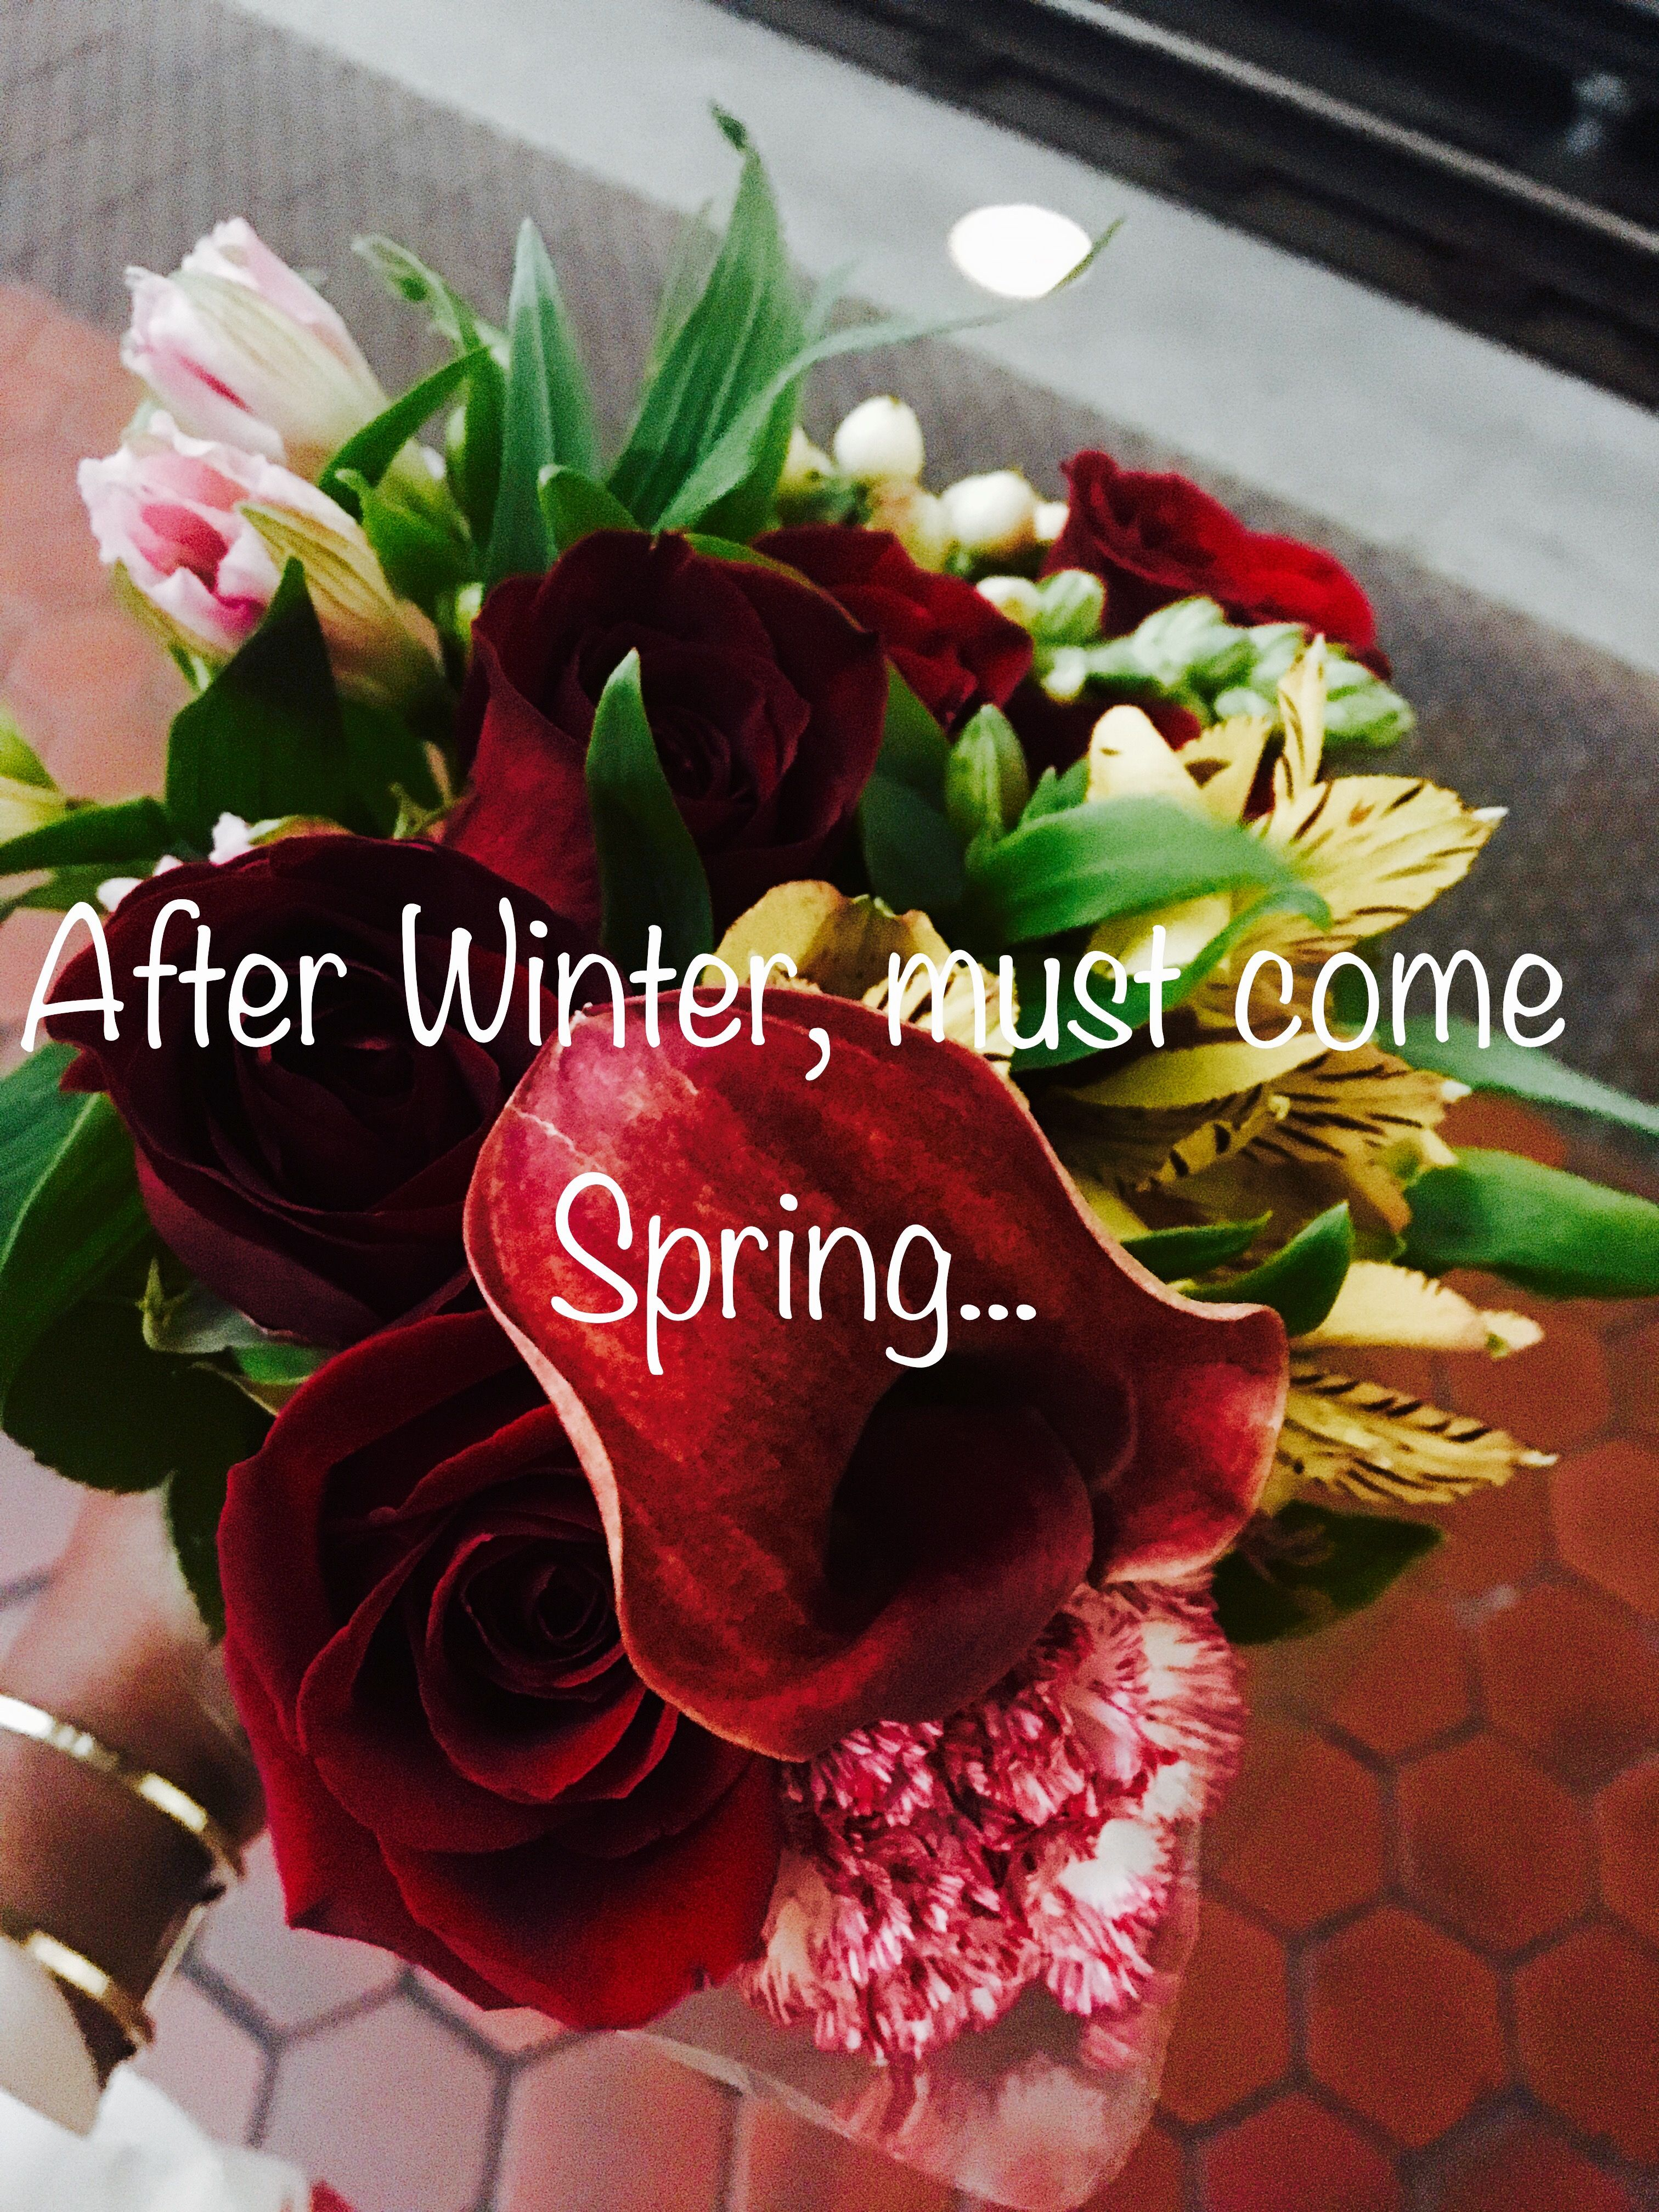 Lovely | Flower quotes, Bouquet, Spring